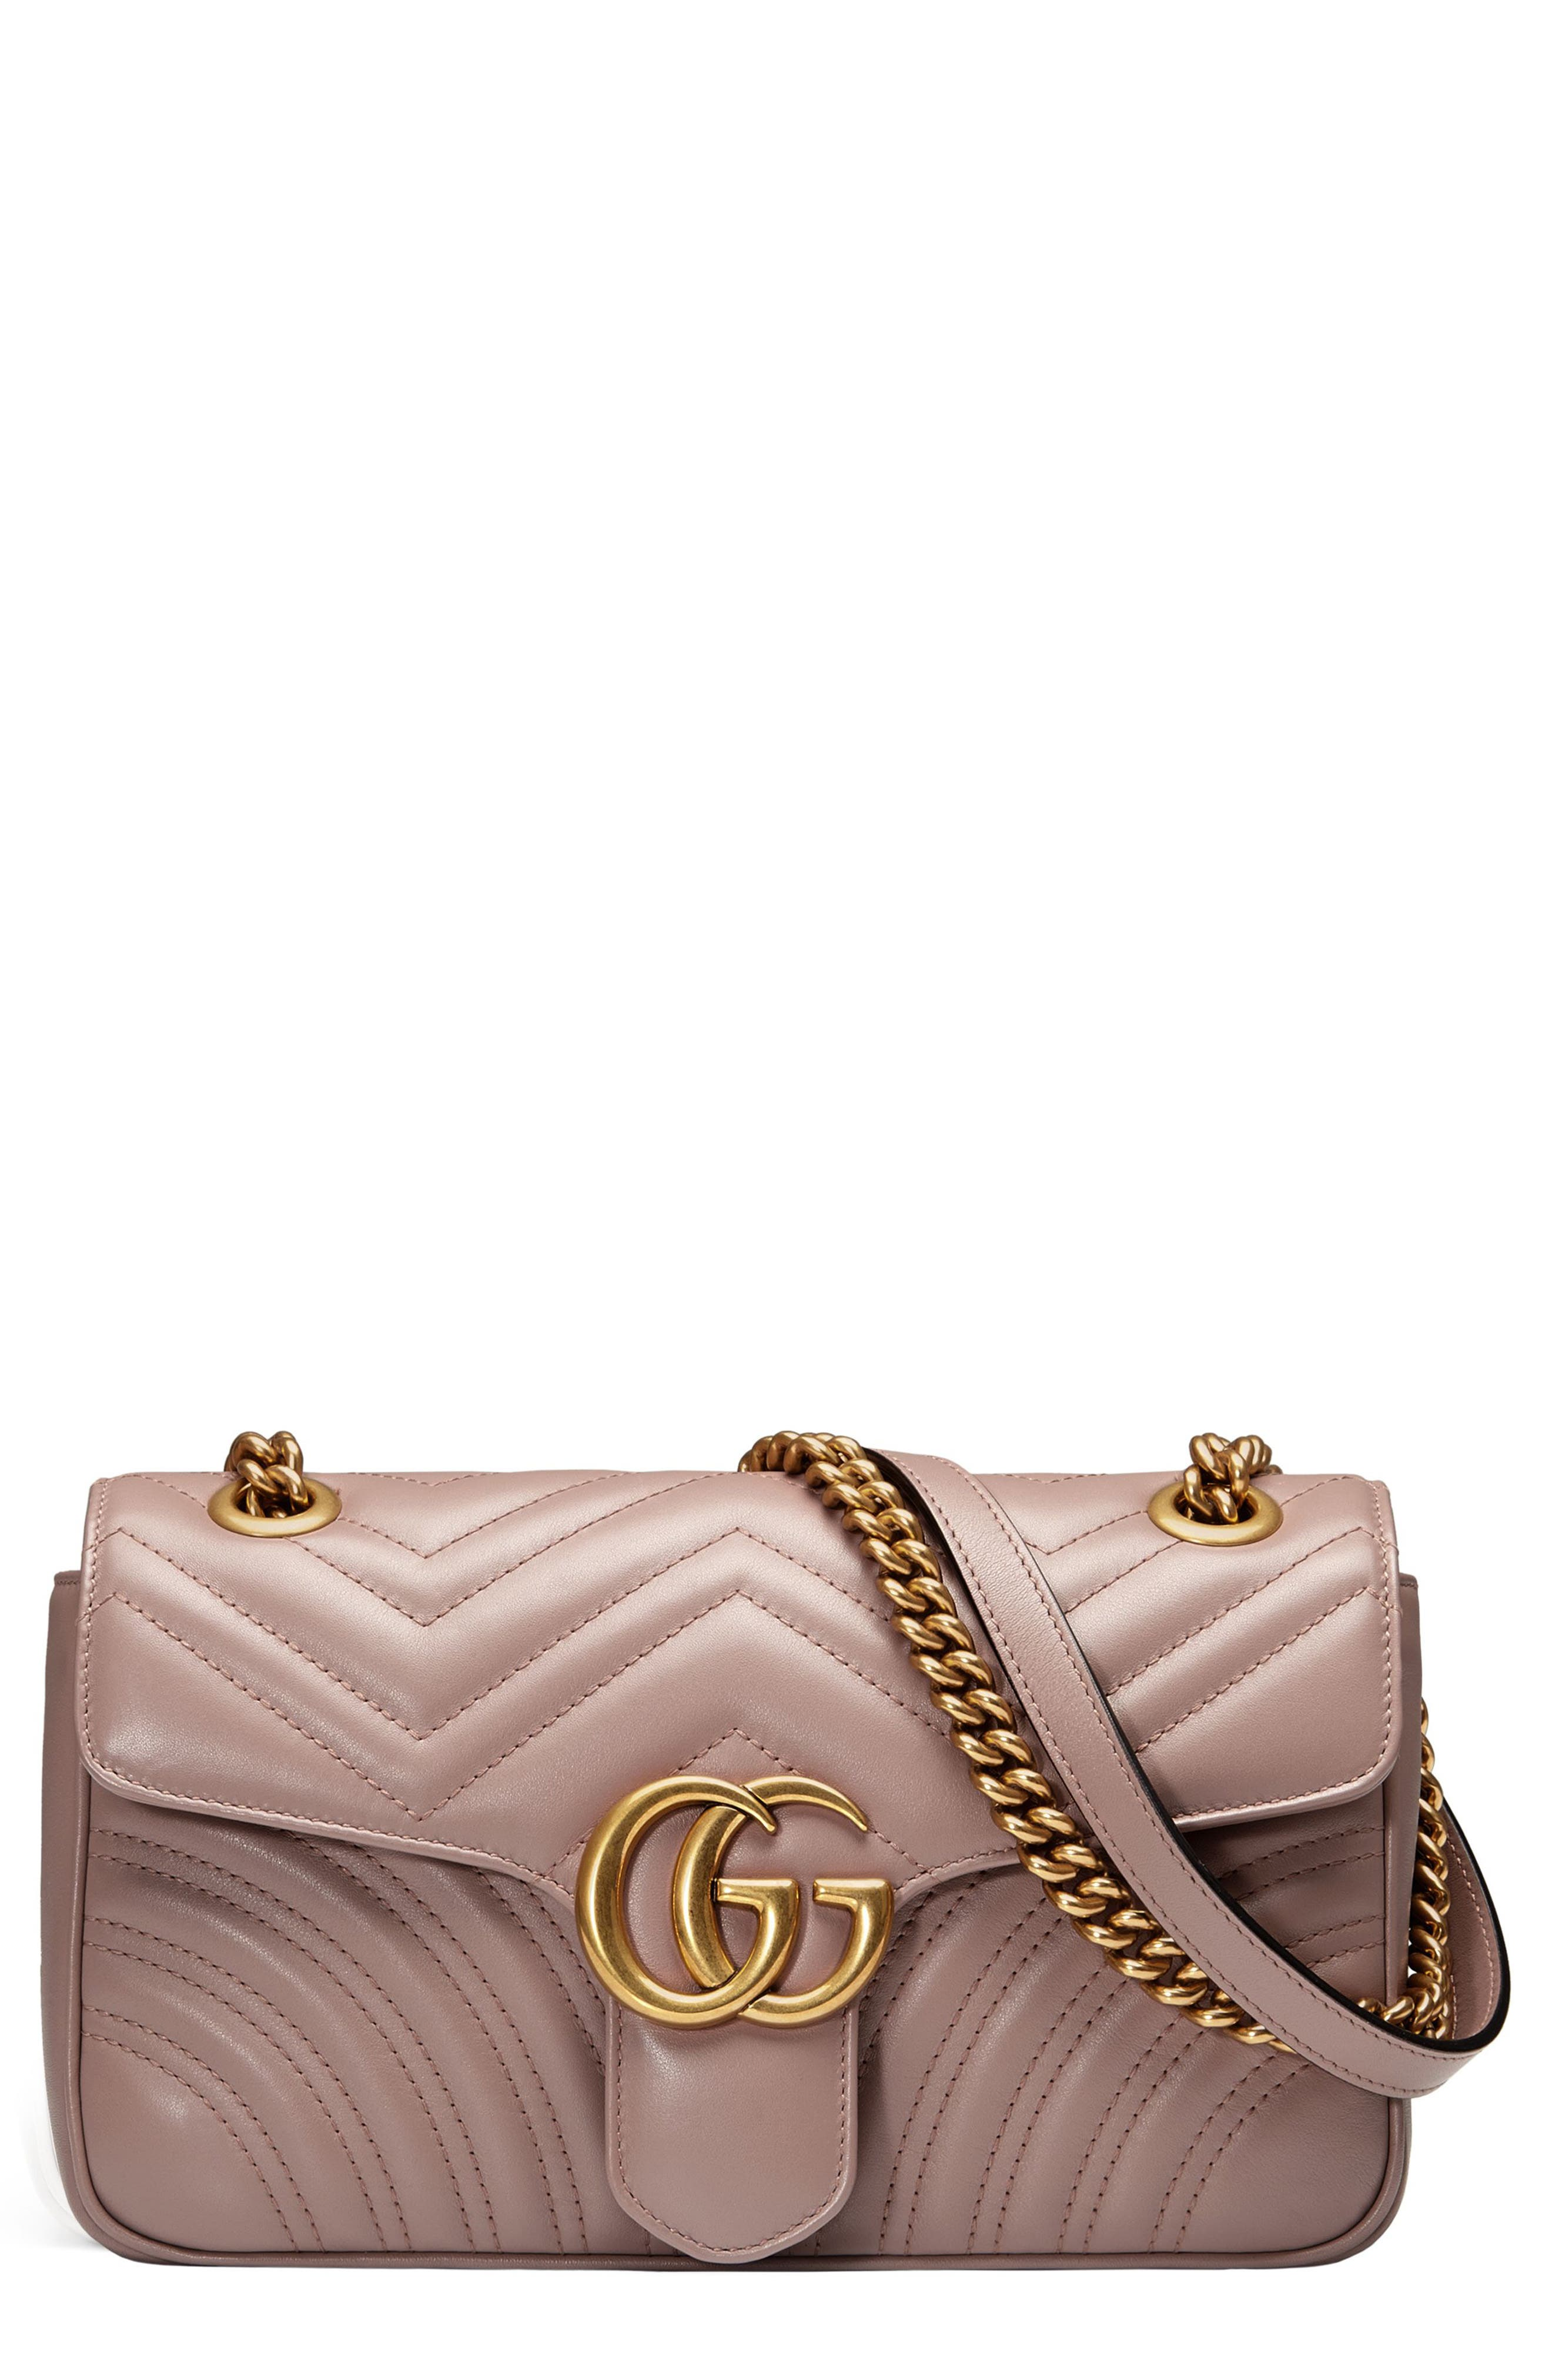 Alternate Image 1 Selected - Gucci Small GG Marmont 2.0 Matelassé Leather Shoulder Bag